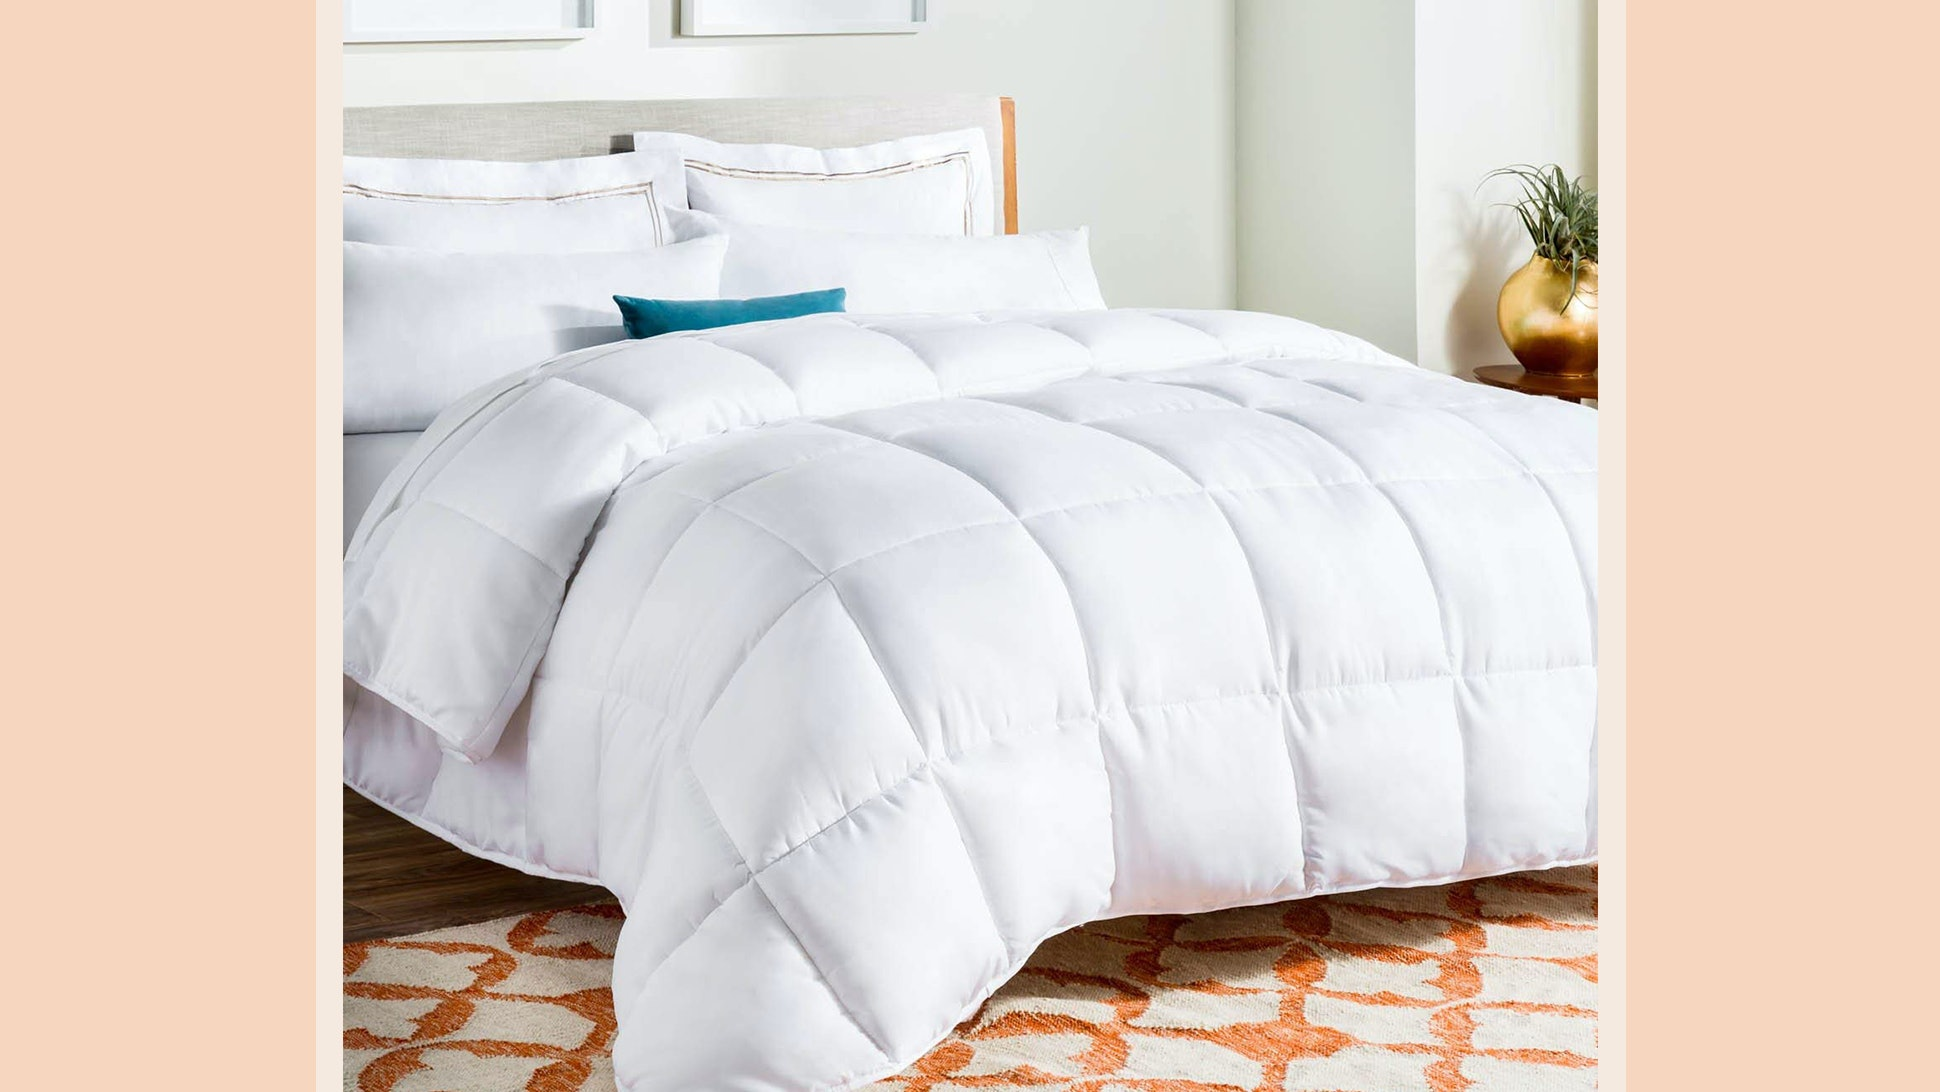 The 7 Best Fluffy Comforters